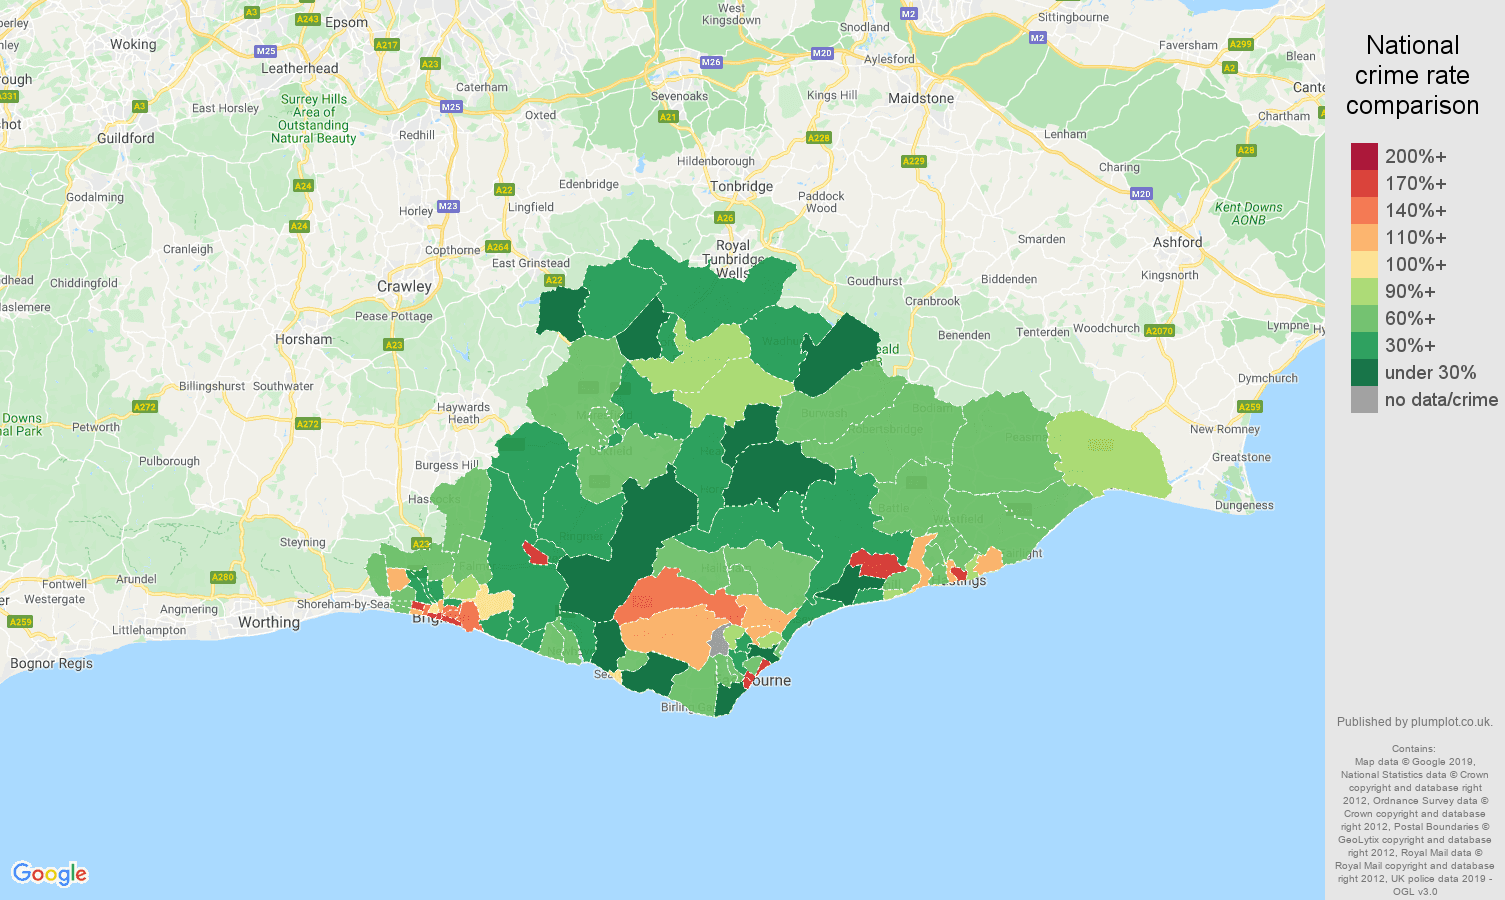 East Sussex other crime rate comparison map